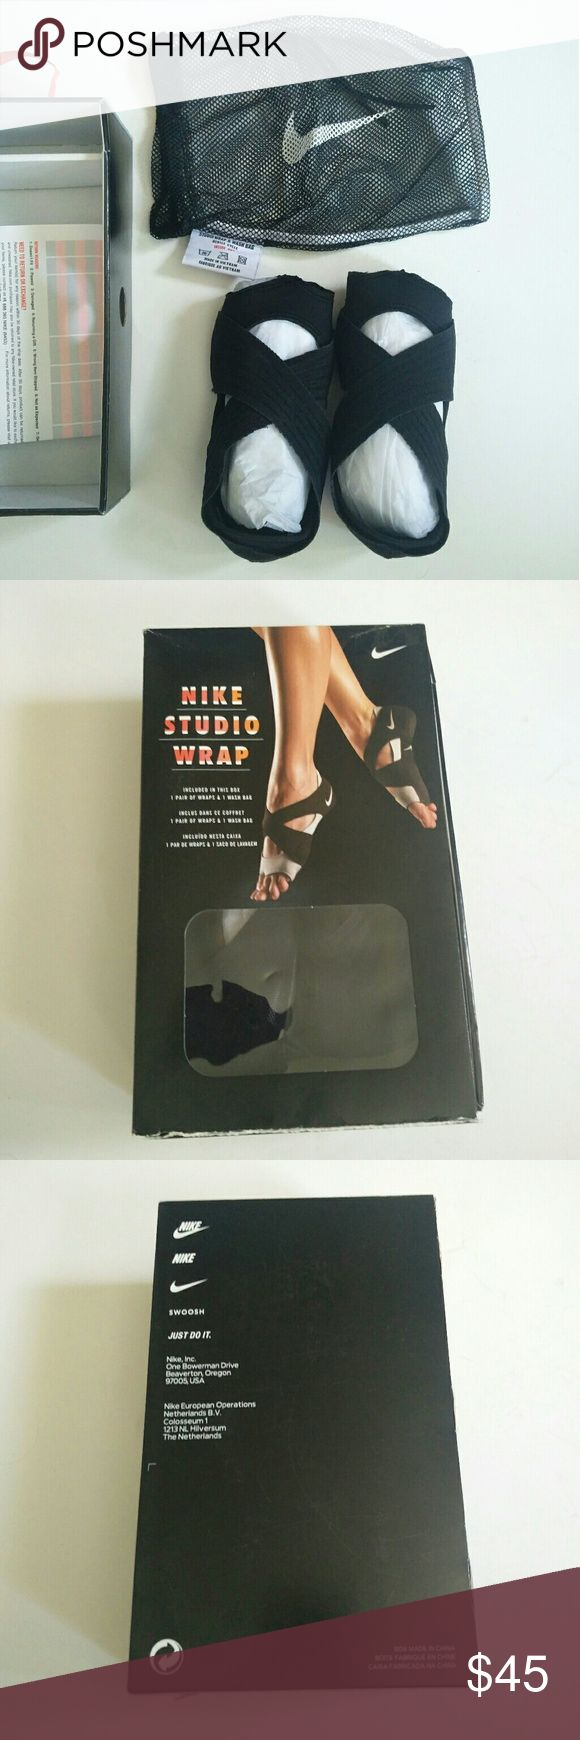 Fitness tools nike studio wraps - The 25 Best Nike Studio Wrap Ideas On Pinterest Yoga Shoes Dance Shoes And Barefoot Shoes